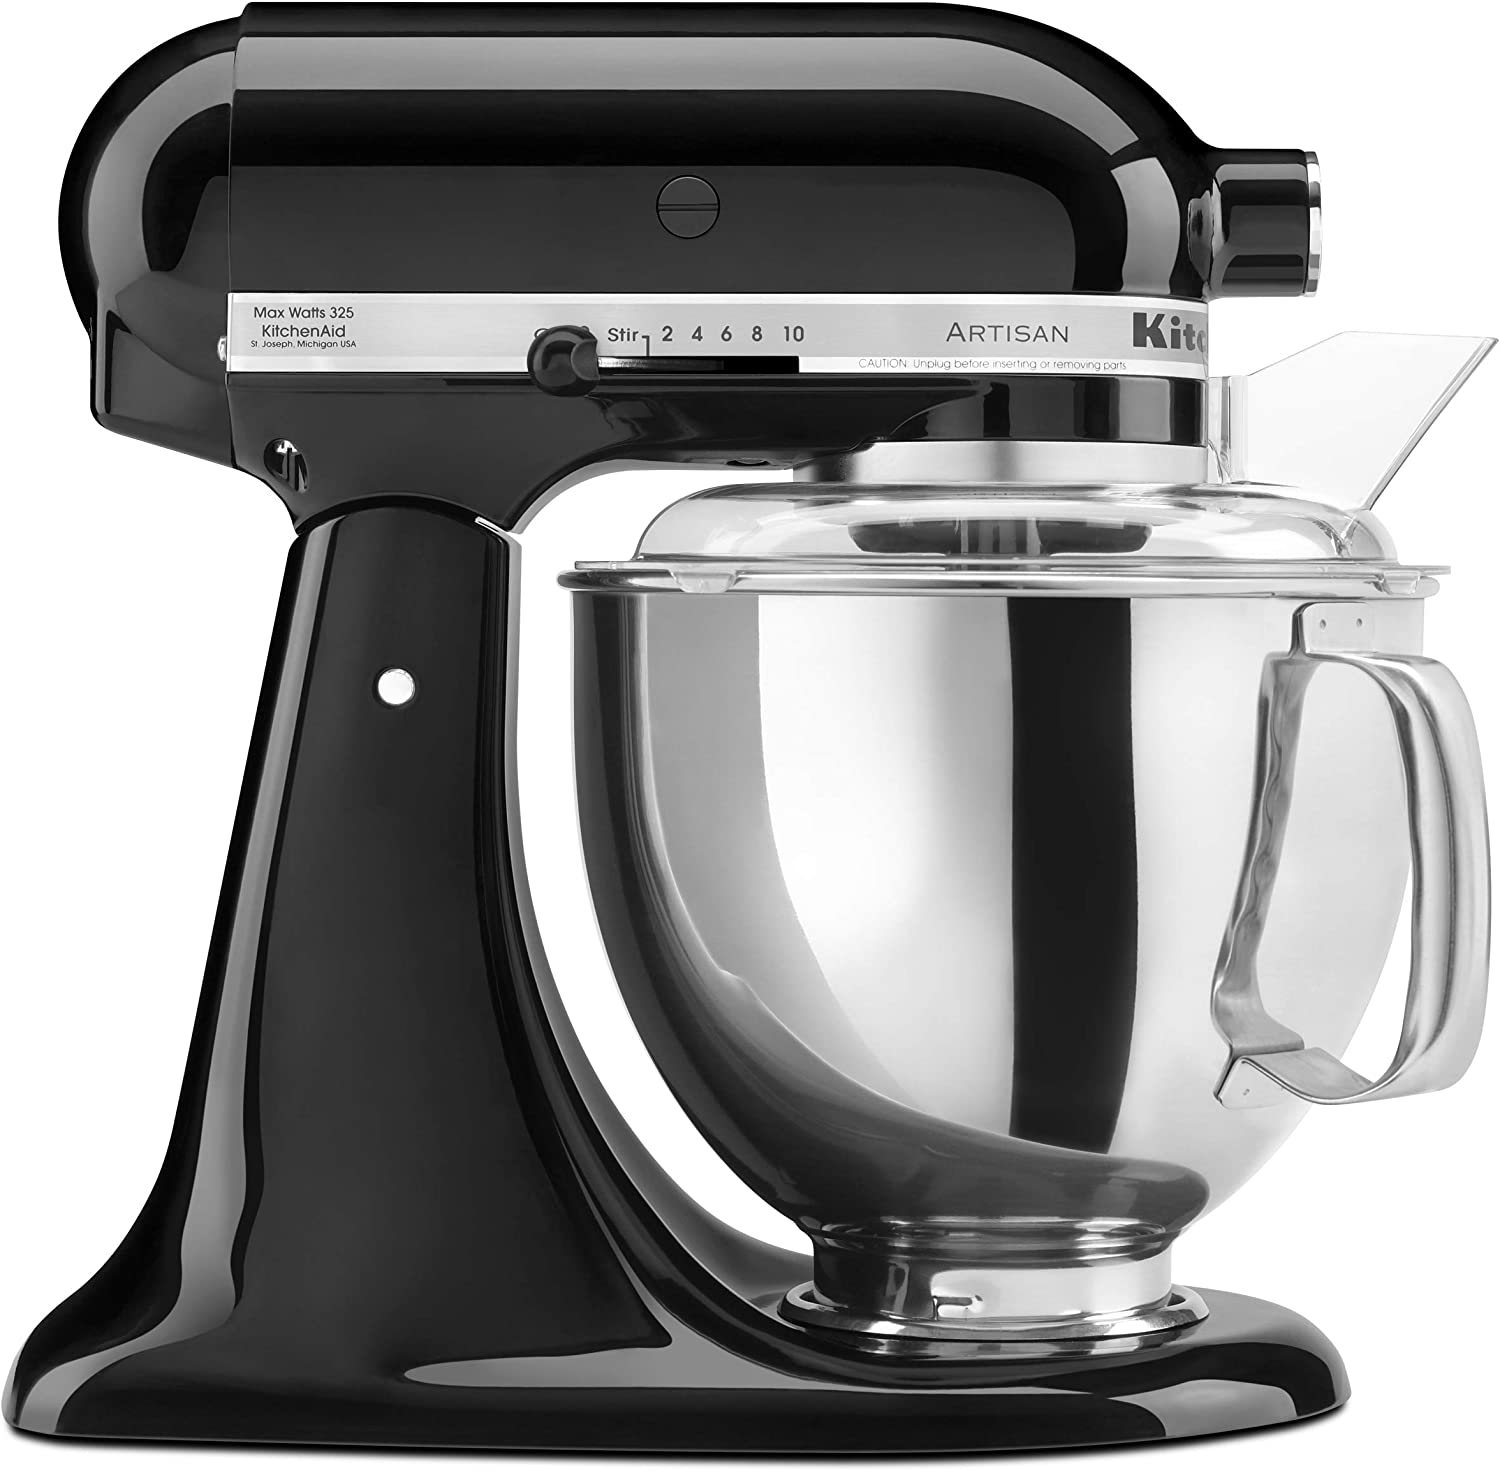 KitchenAid Artisan Series 5-Qt. Stand Mixer with Pouring Shield - Onyx Black